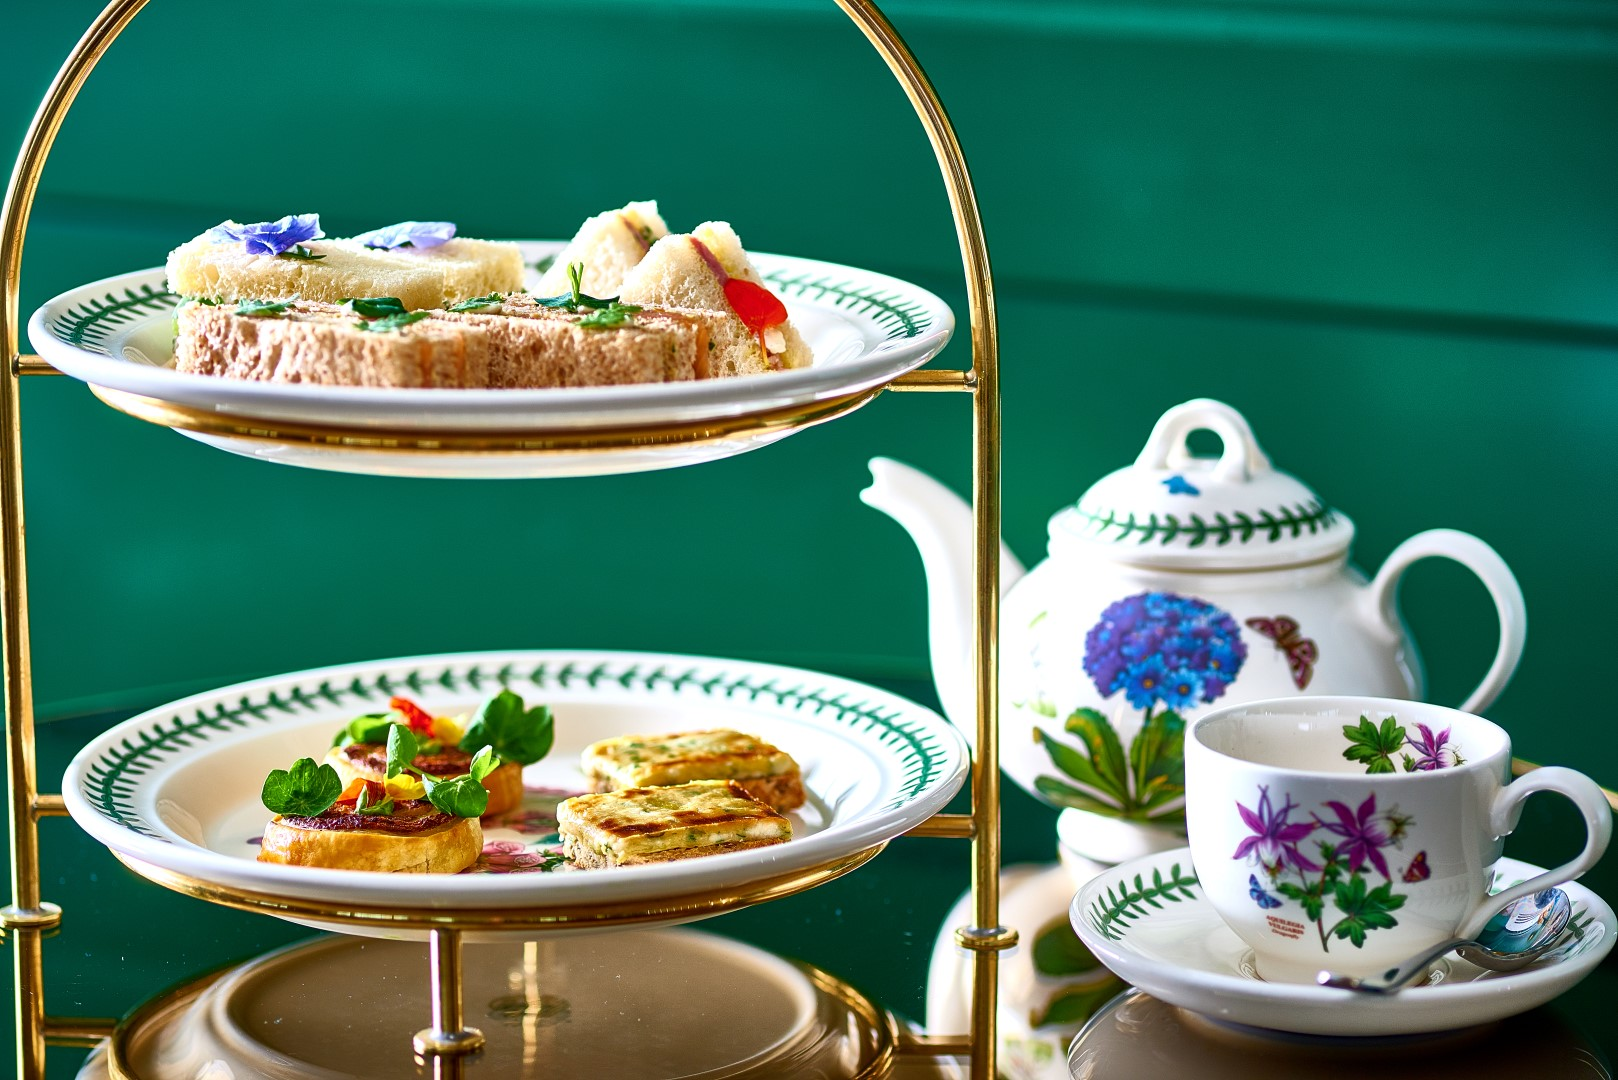 Best place for afternoon tea in London